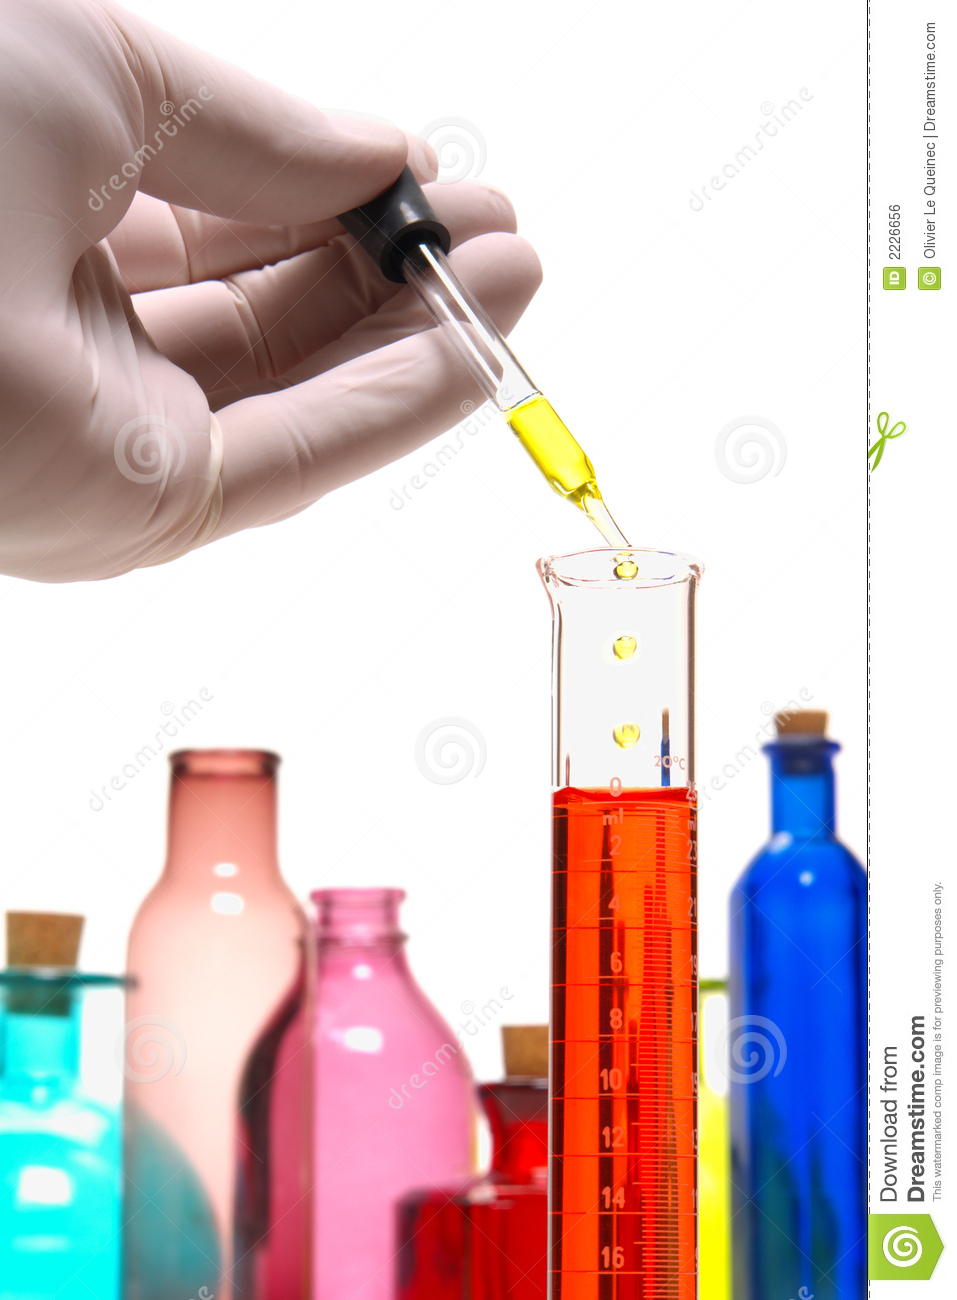 Laboratory Experiment In Science Research Lab Royalty Free Stock Image ...